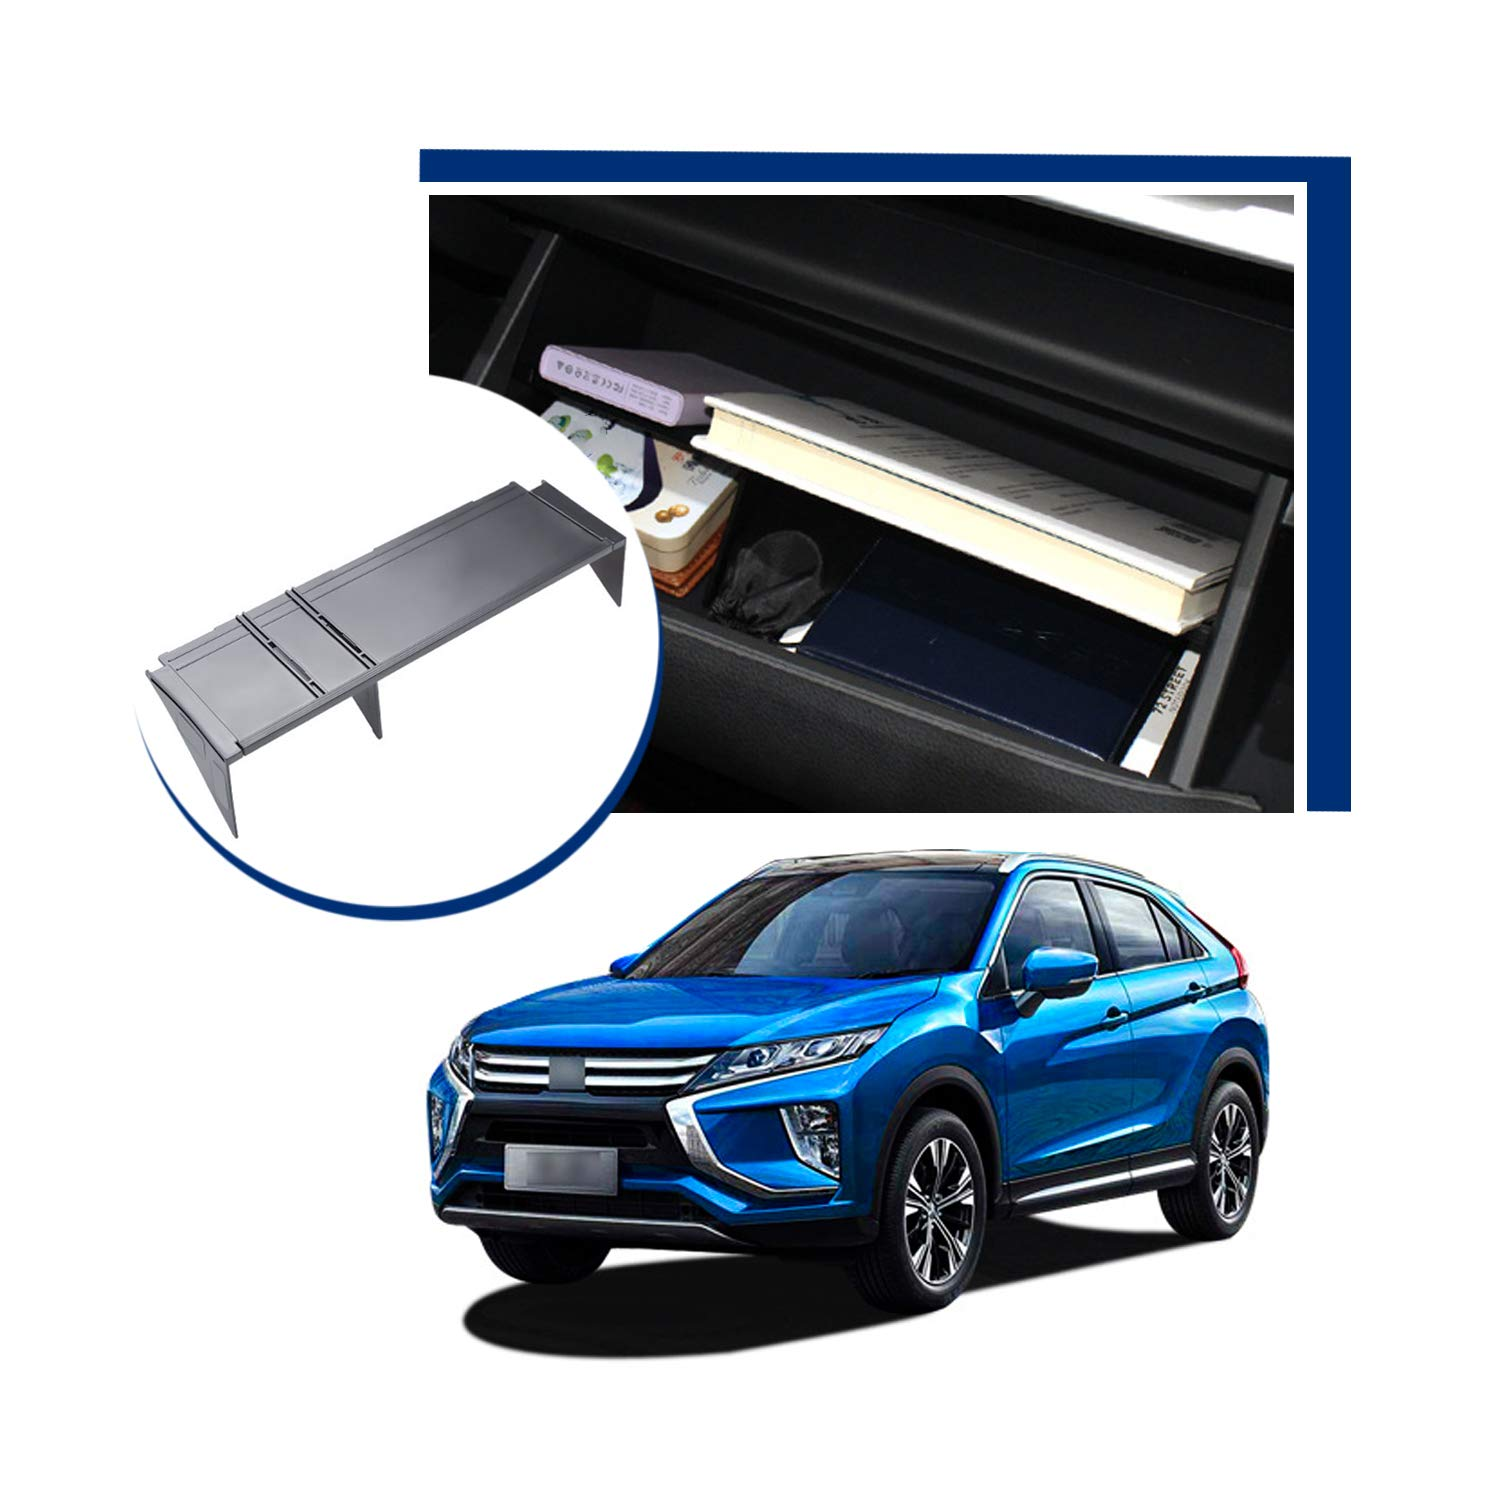 LFOTPP Center Console Organizer for Mitsubishi Edipse Cross 2018-2019,Car Accessories Armrest Box Internal Storage Insert Divider Glove Box Organizer Partition